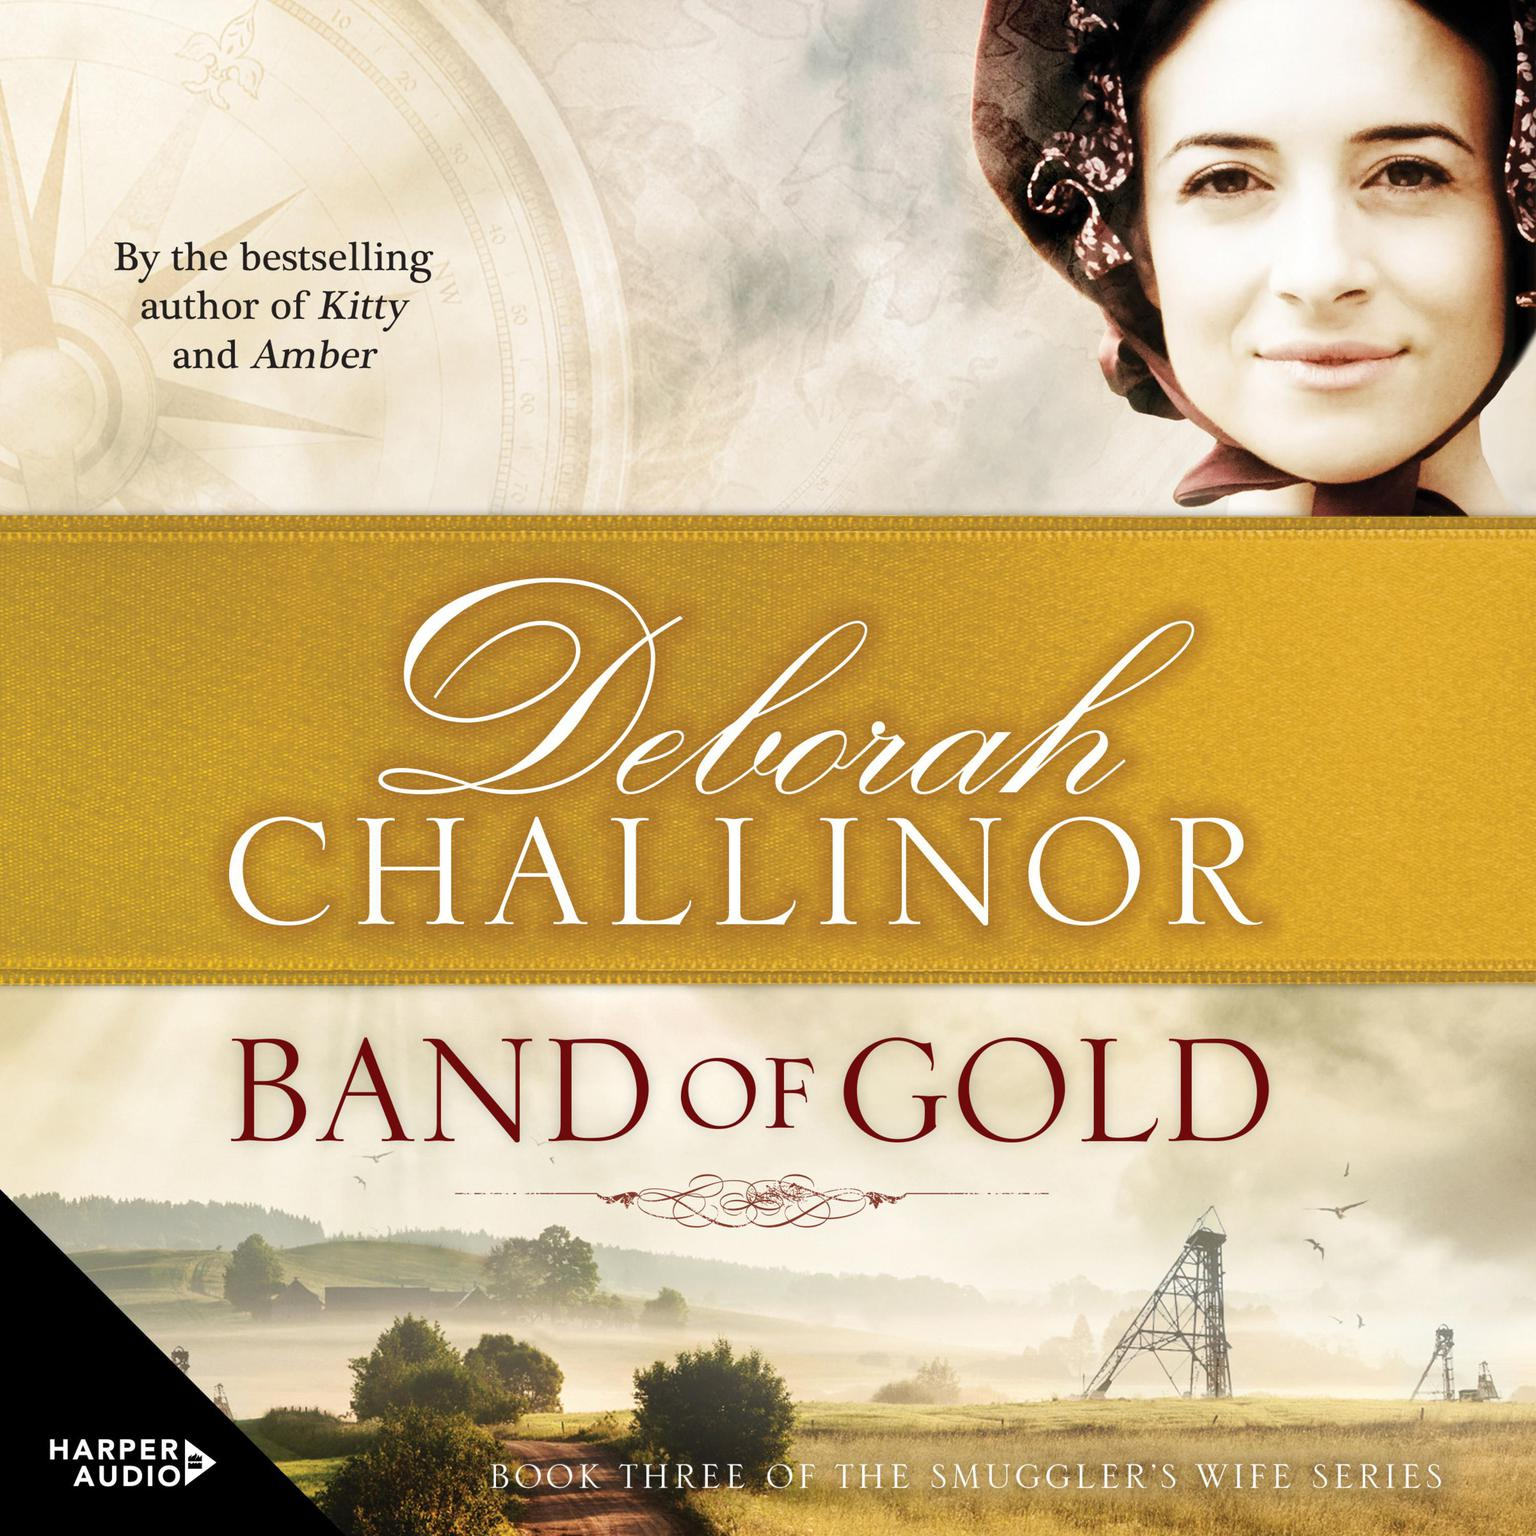 Printable Band of Gold Audiobook Cover Art